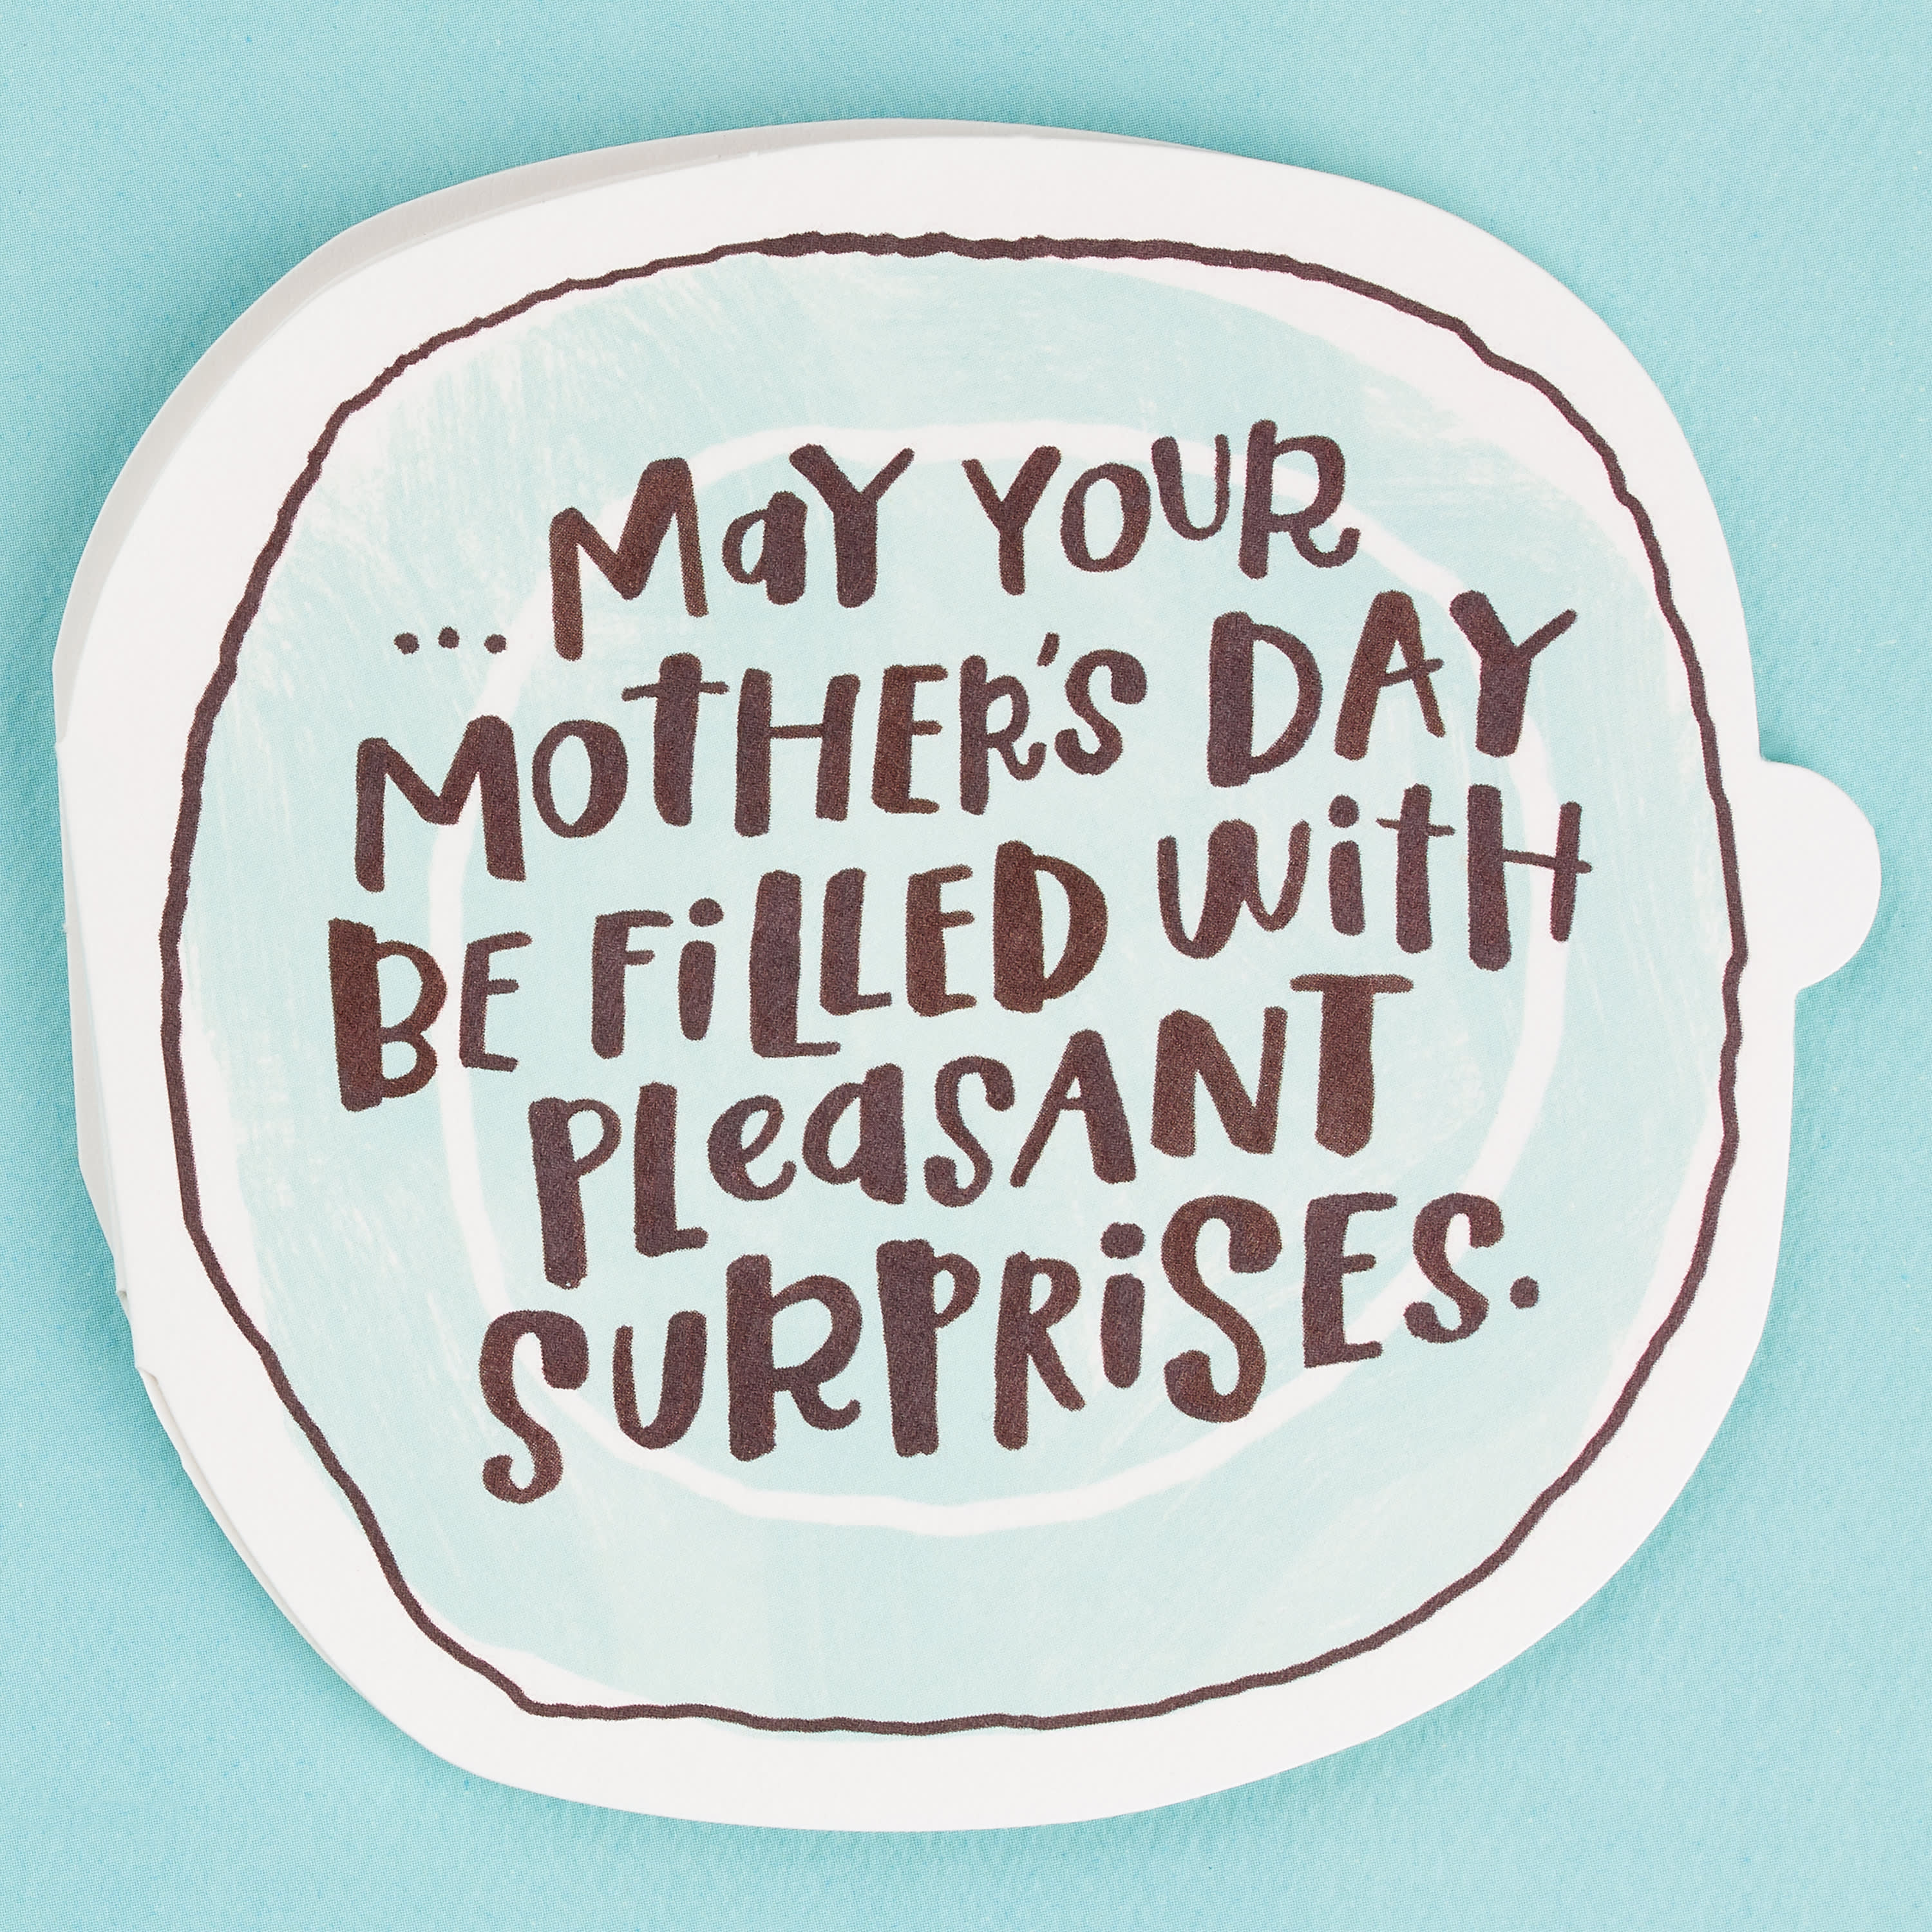 Funny Cookies Mother's Day Card image